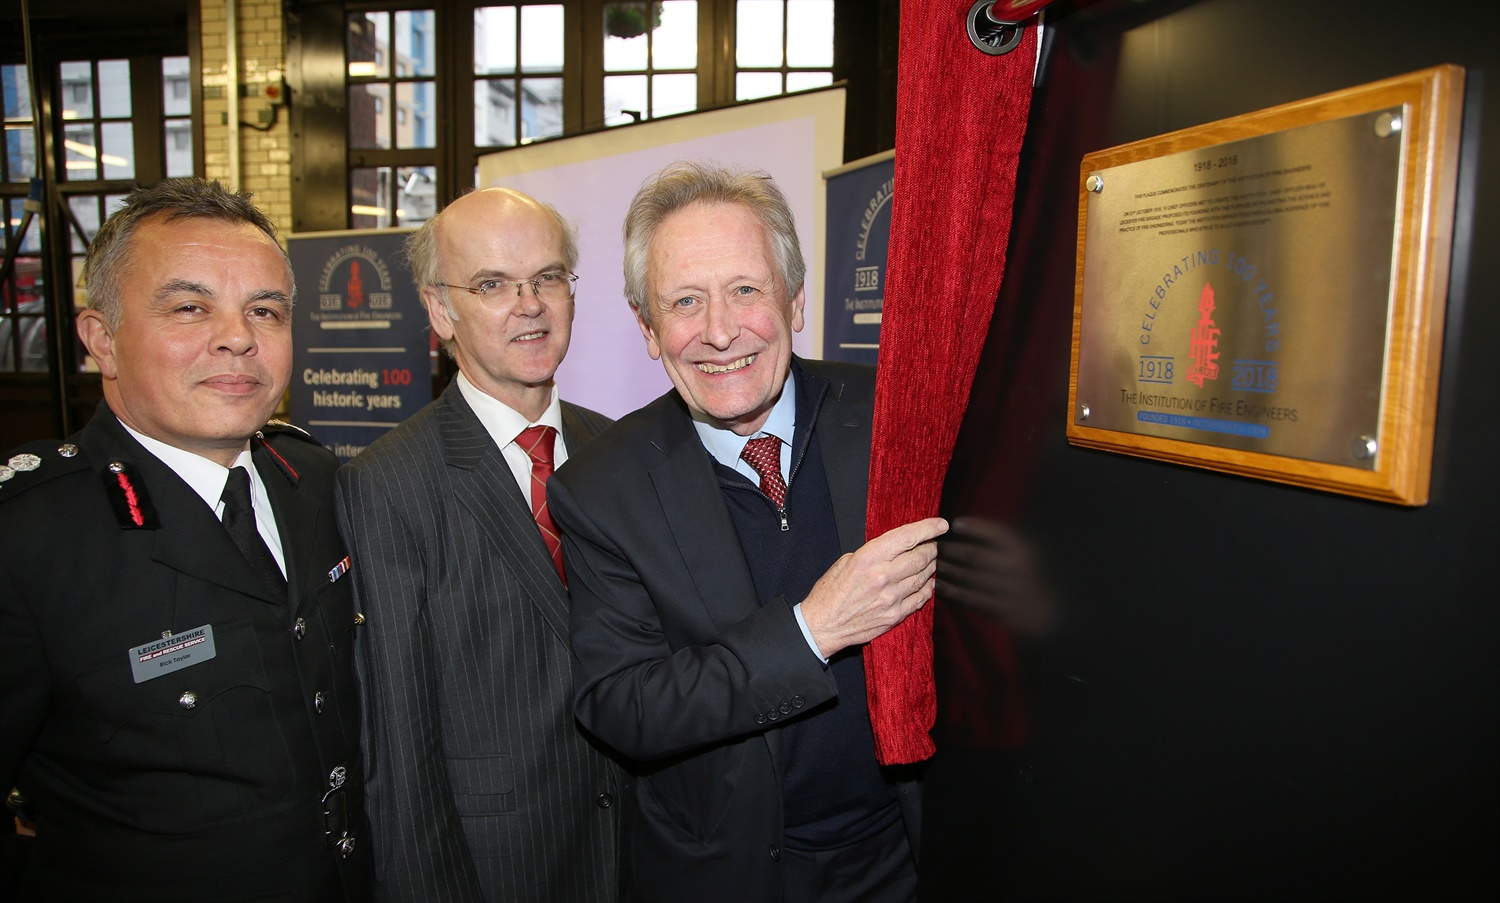 Image 1 - Sir Peter Soulsby unveils IFE plaque